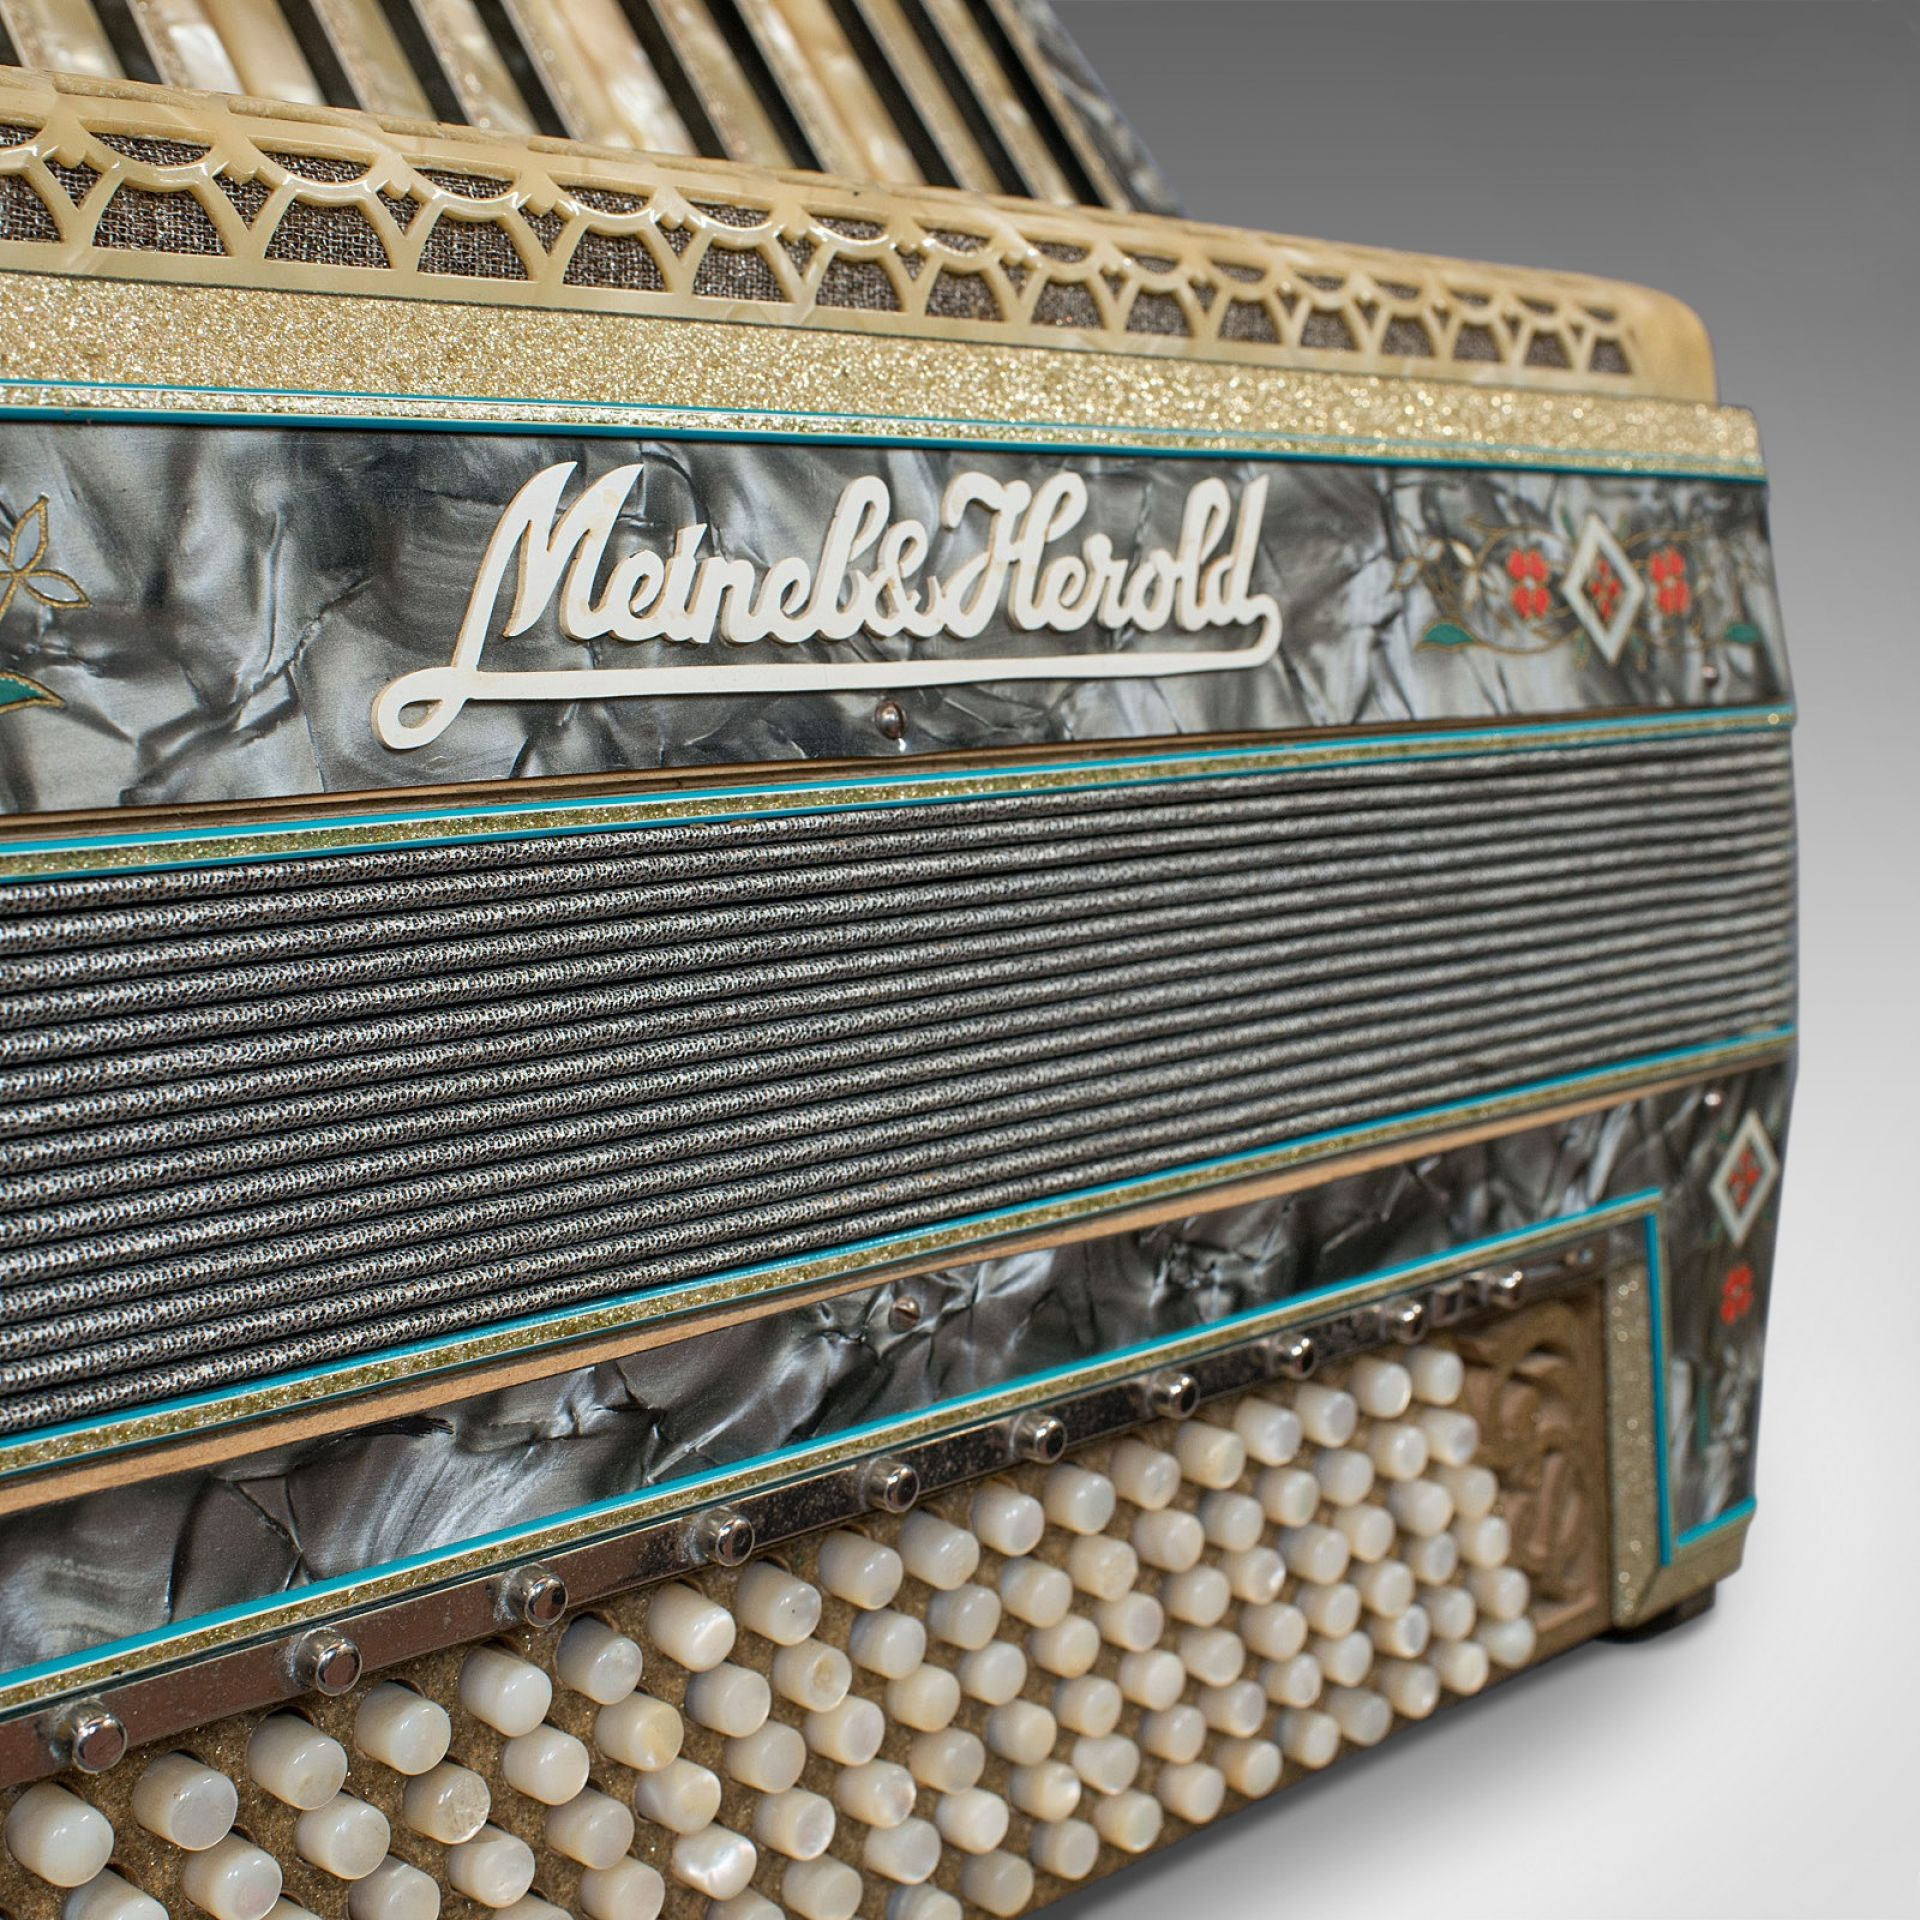 Vintage Piano Accordion, German, Squeezebox, Meinel and Herold, Dix Reeds